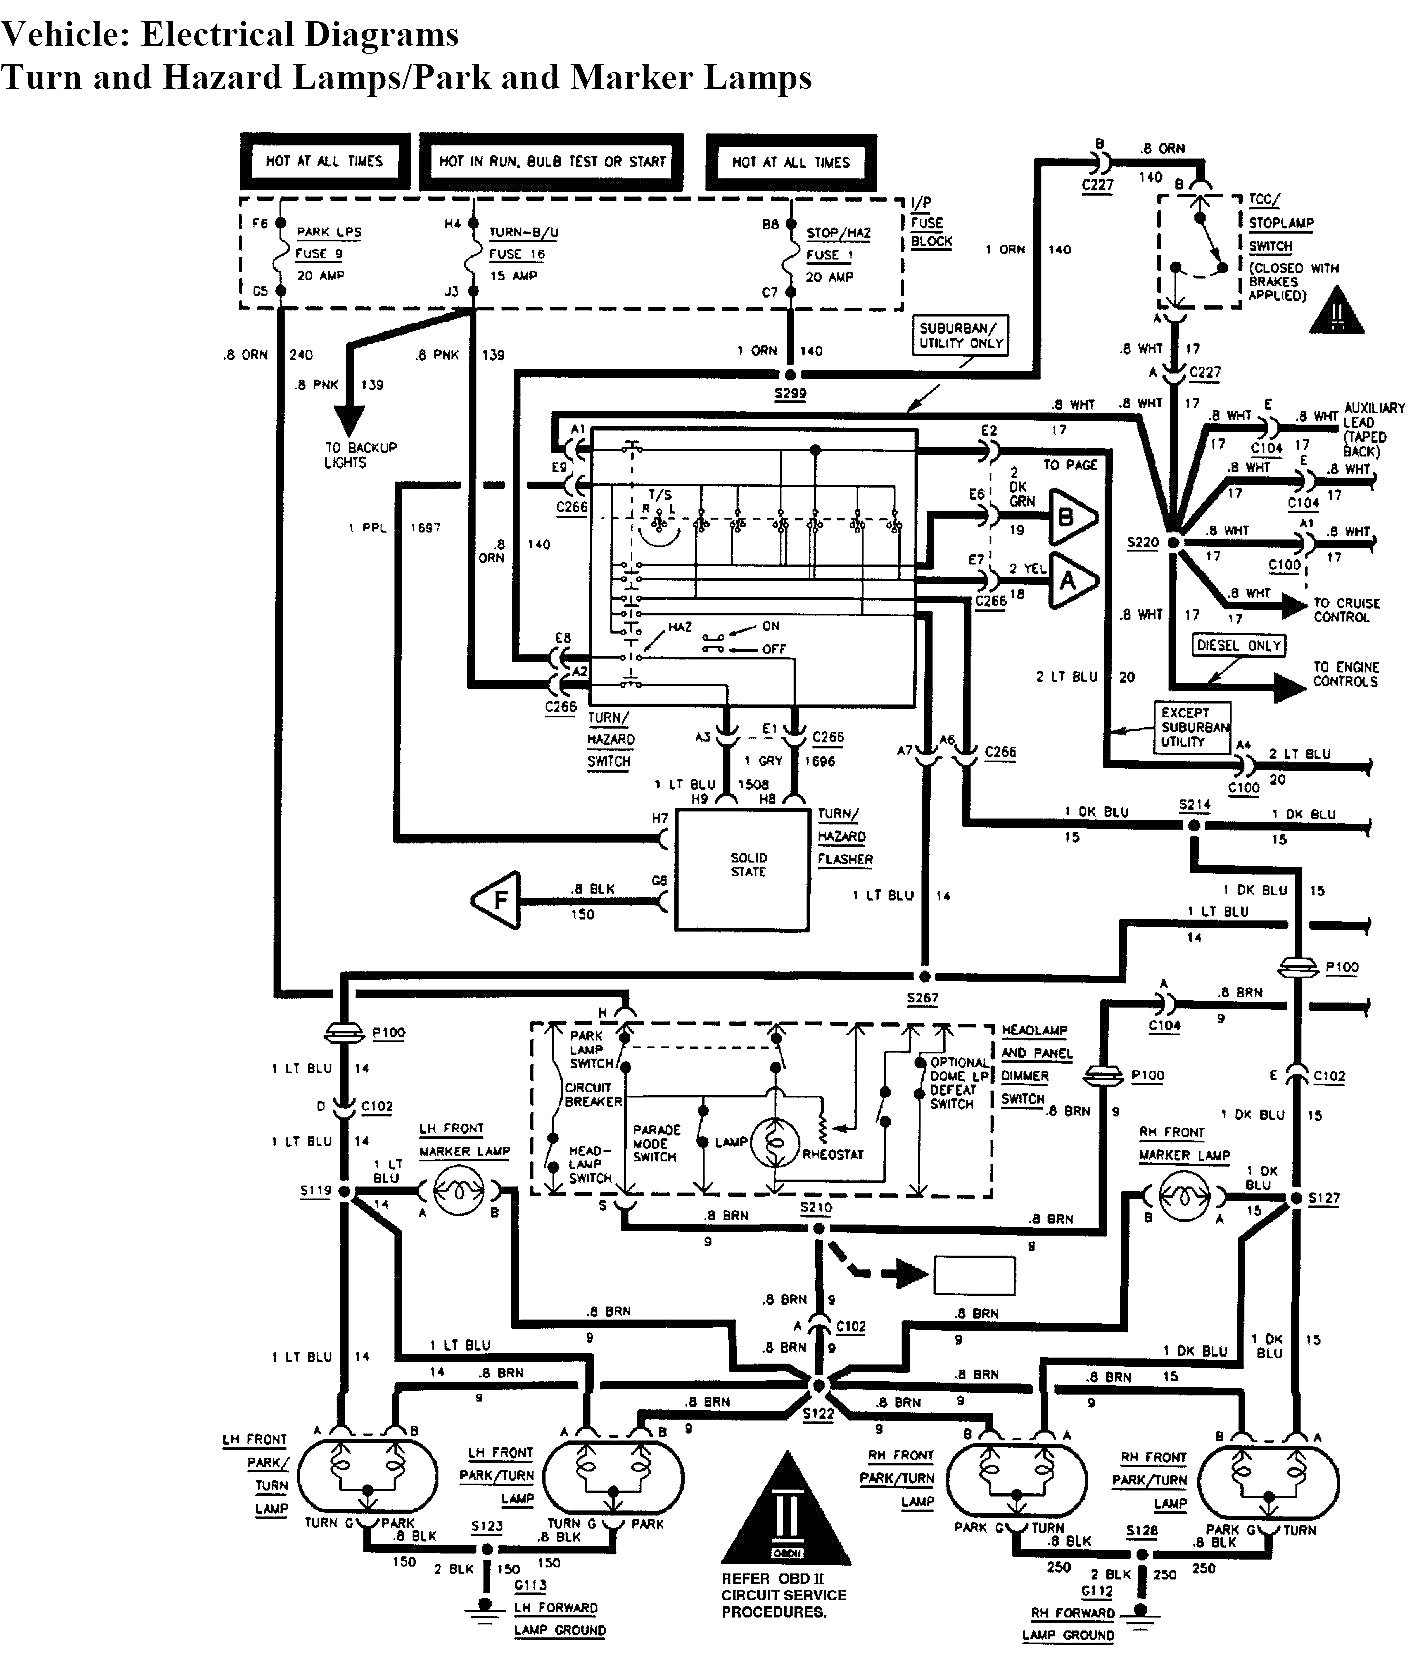 2006 Silverado Brake Light Wiring Diagram Reinvent Your 04 Colorado Chevy And Rh Rivcas Org 2000